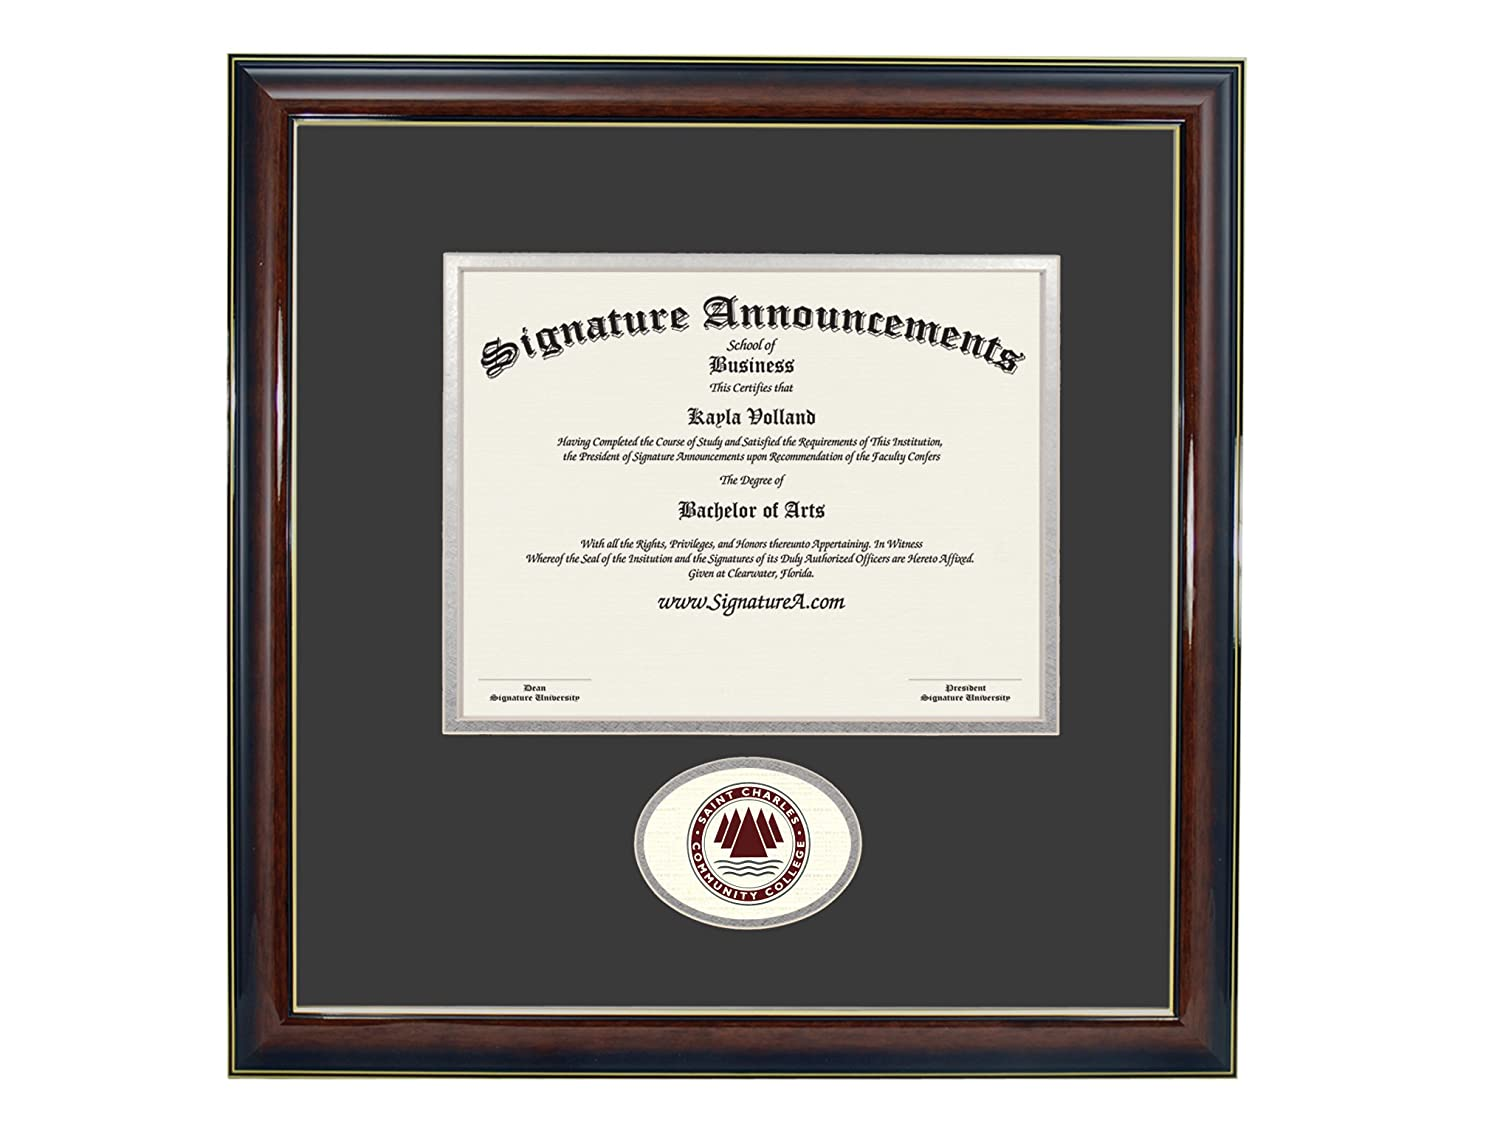 Sculpted Foil Seal Graduation Diploma Frame 16 x 16 Gold Accent Gloss Mahogany Signature Announcements St-Charles-Community-College Undergraduate